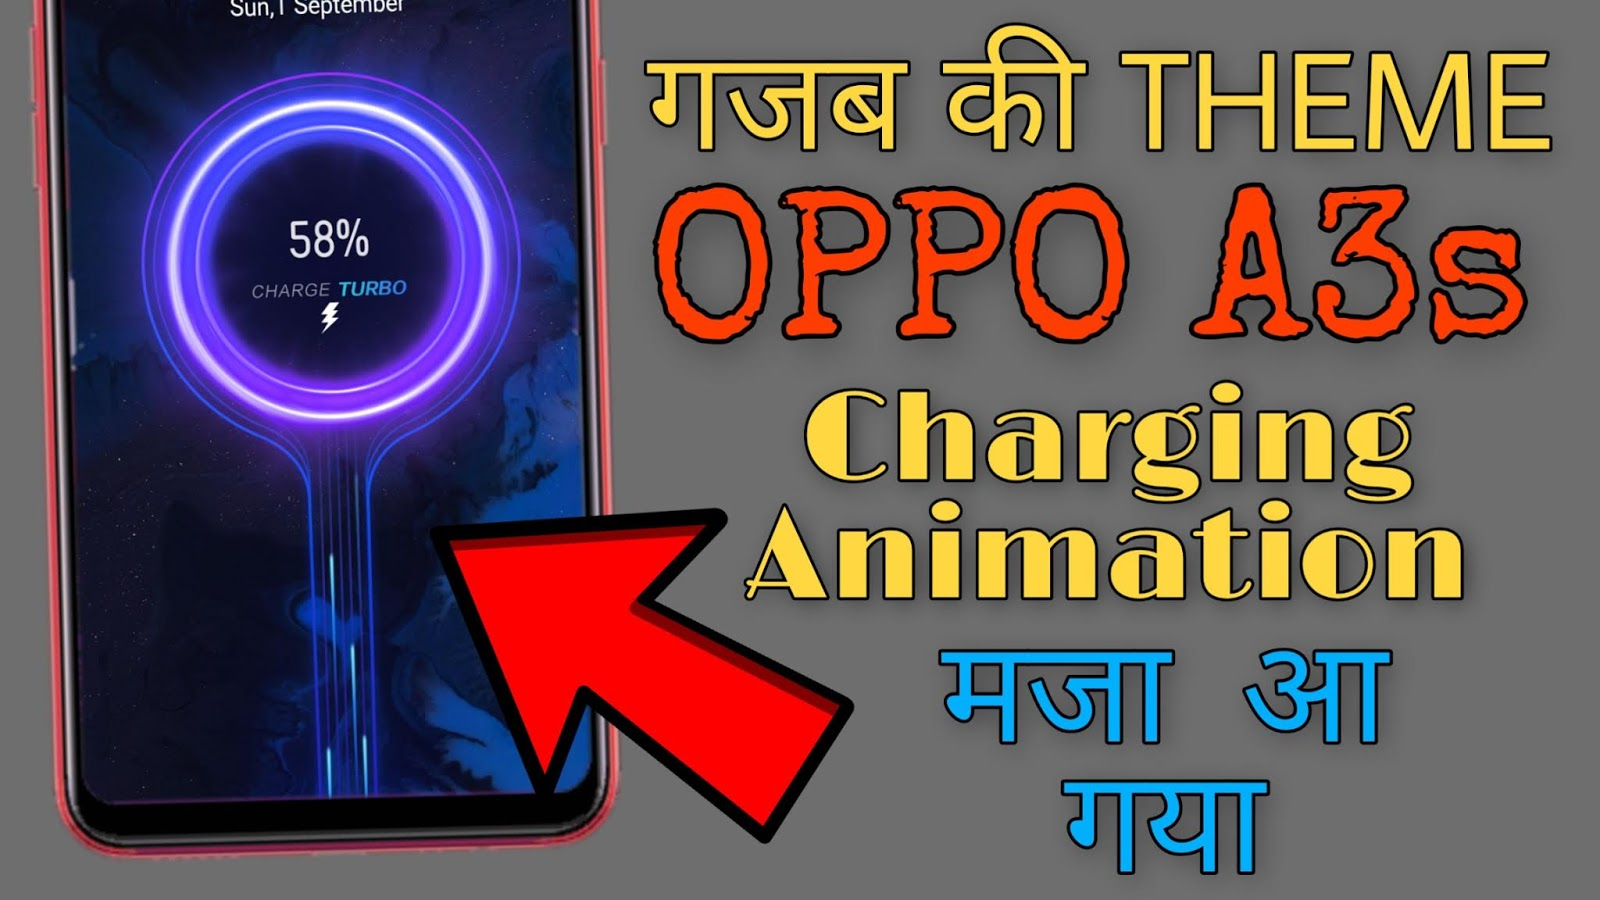 Best Theme Of 2019 With Charging Animation For All Oppo And